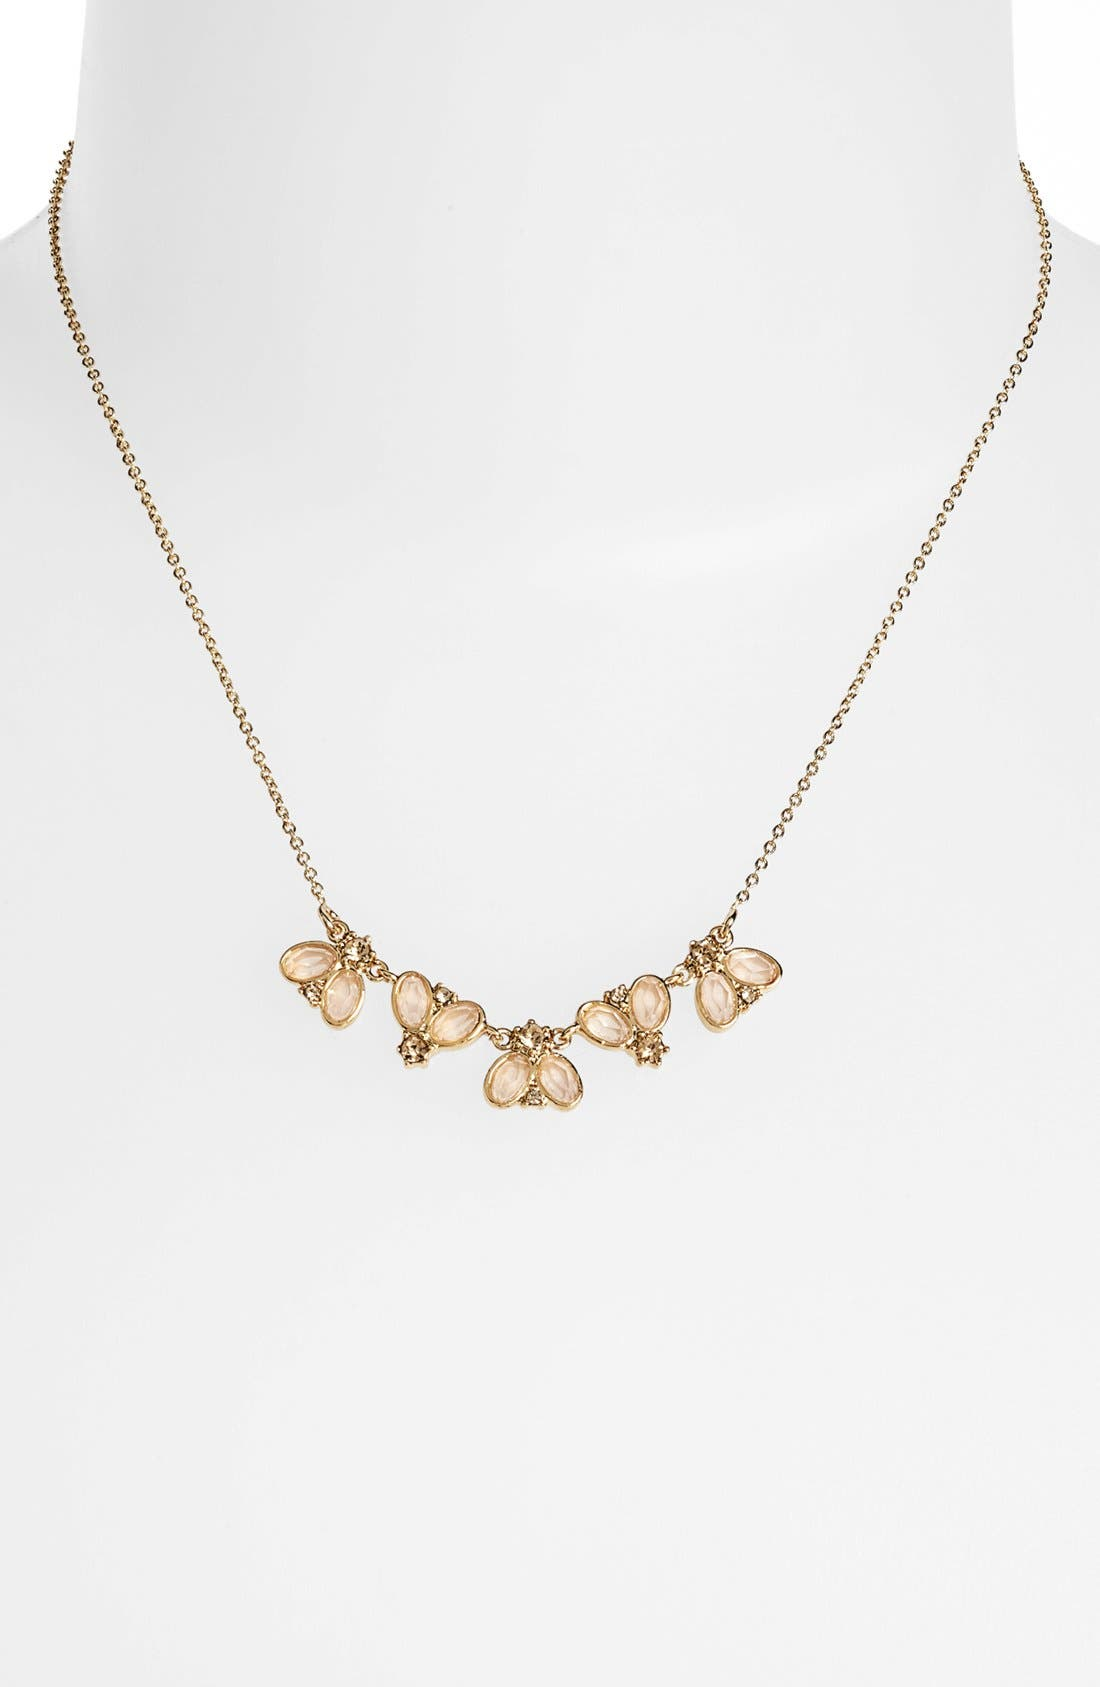 Main Image - kate spade new york 'floral fete' necklace